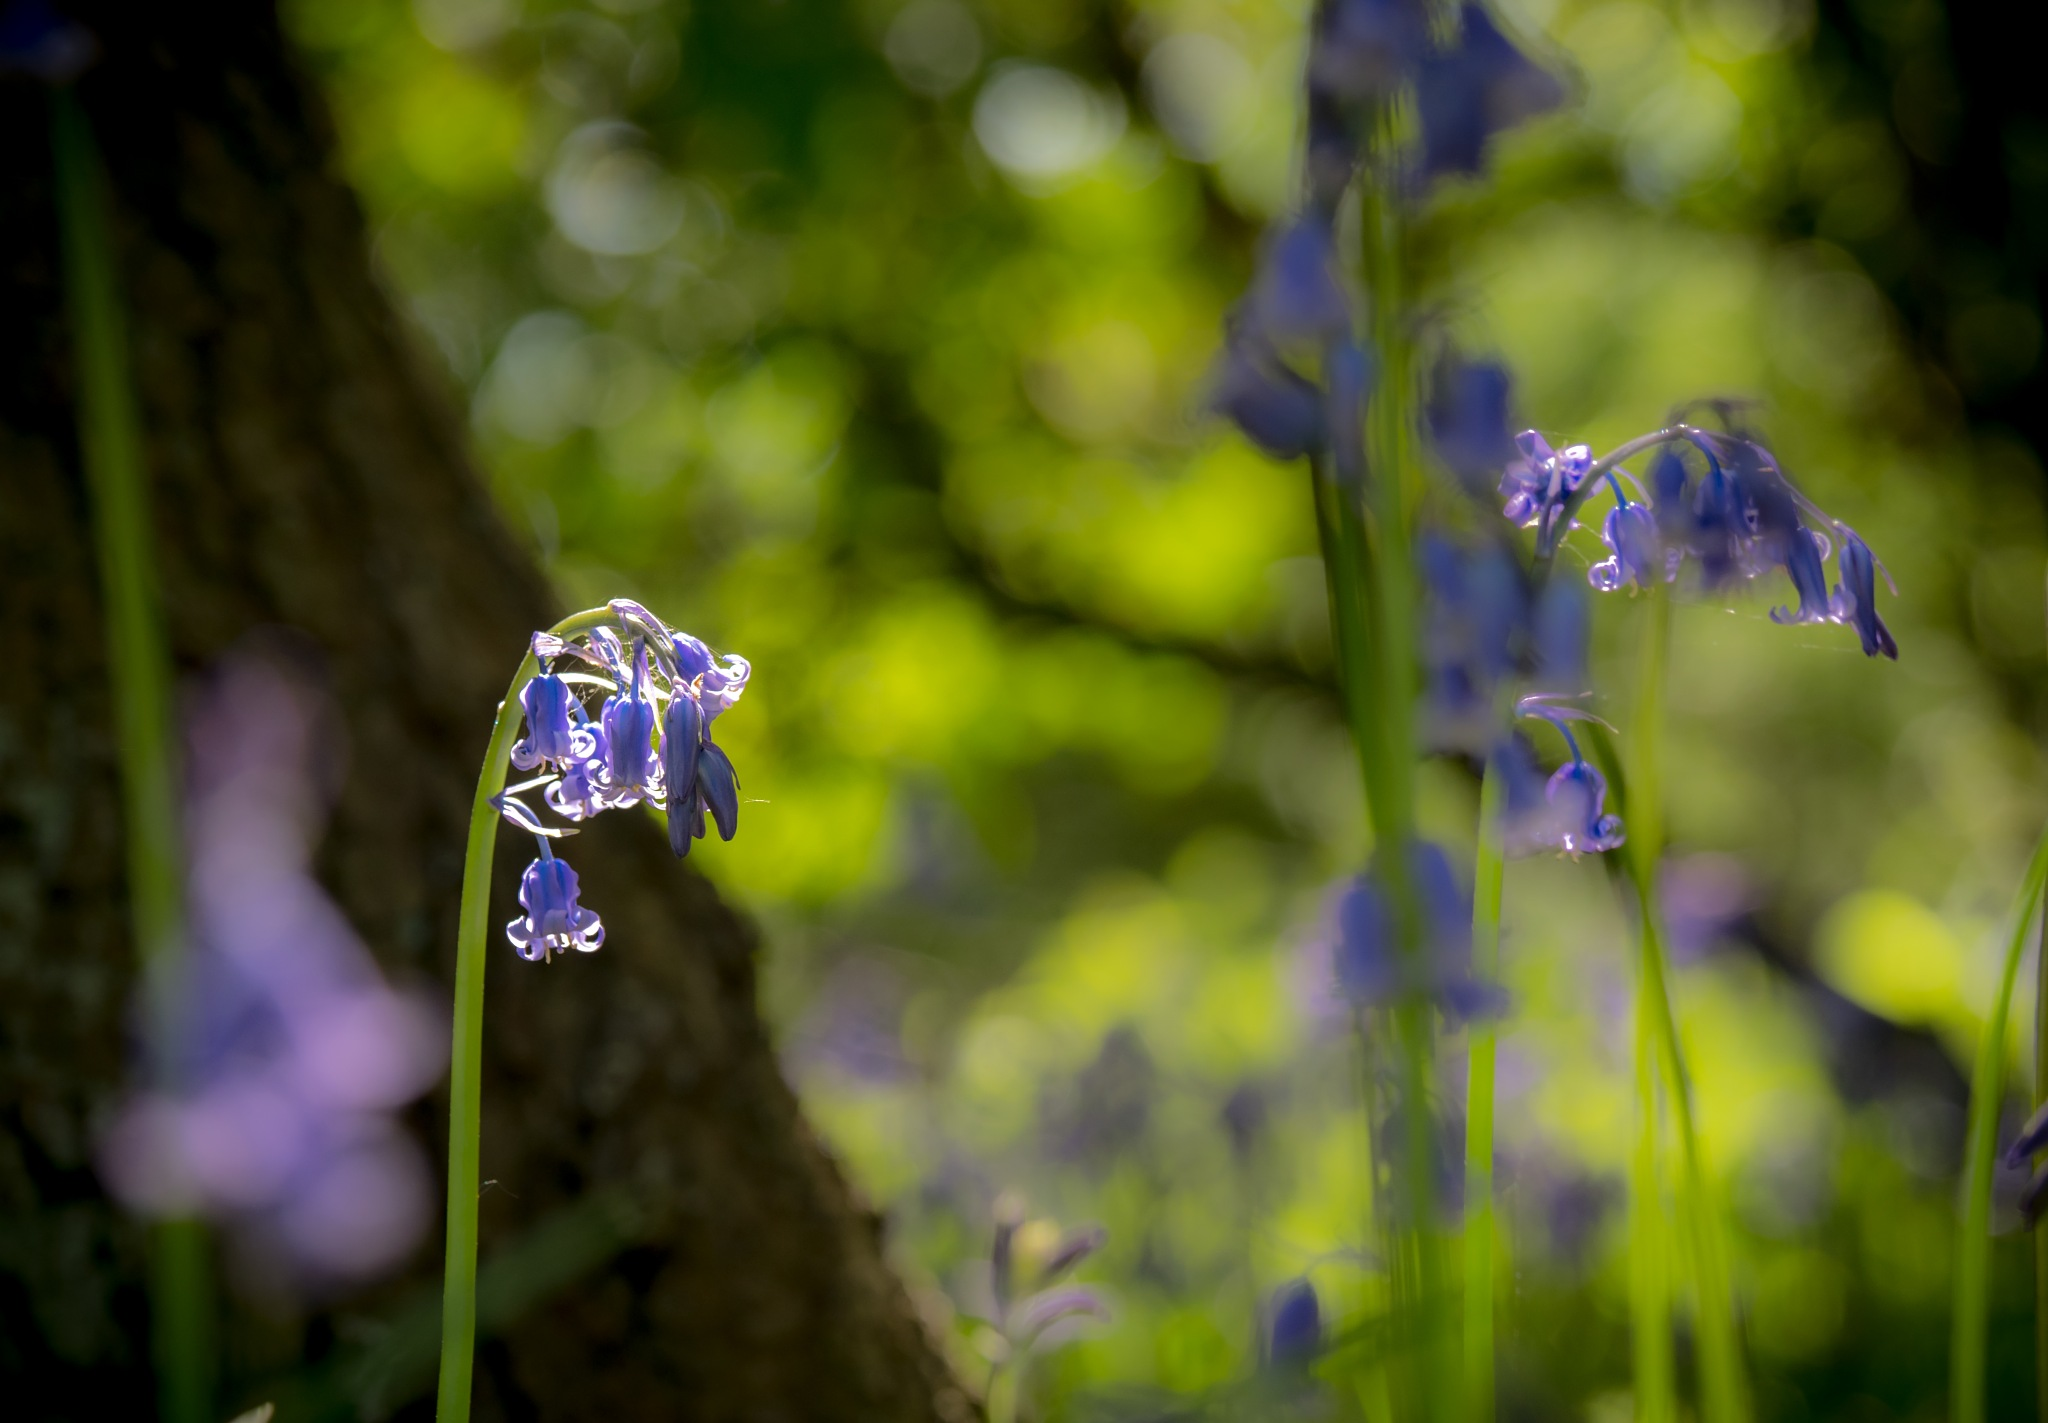 Sparkling in the Sunshine by Sarah Walters